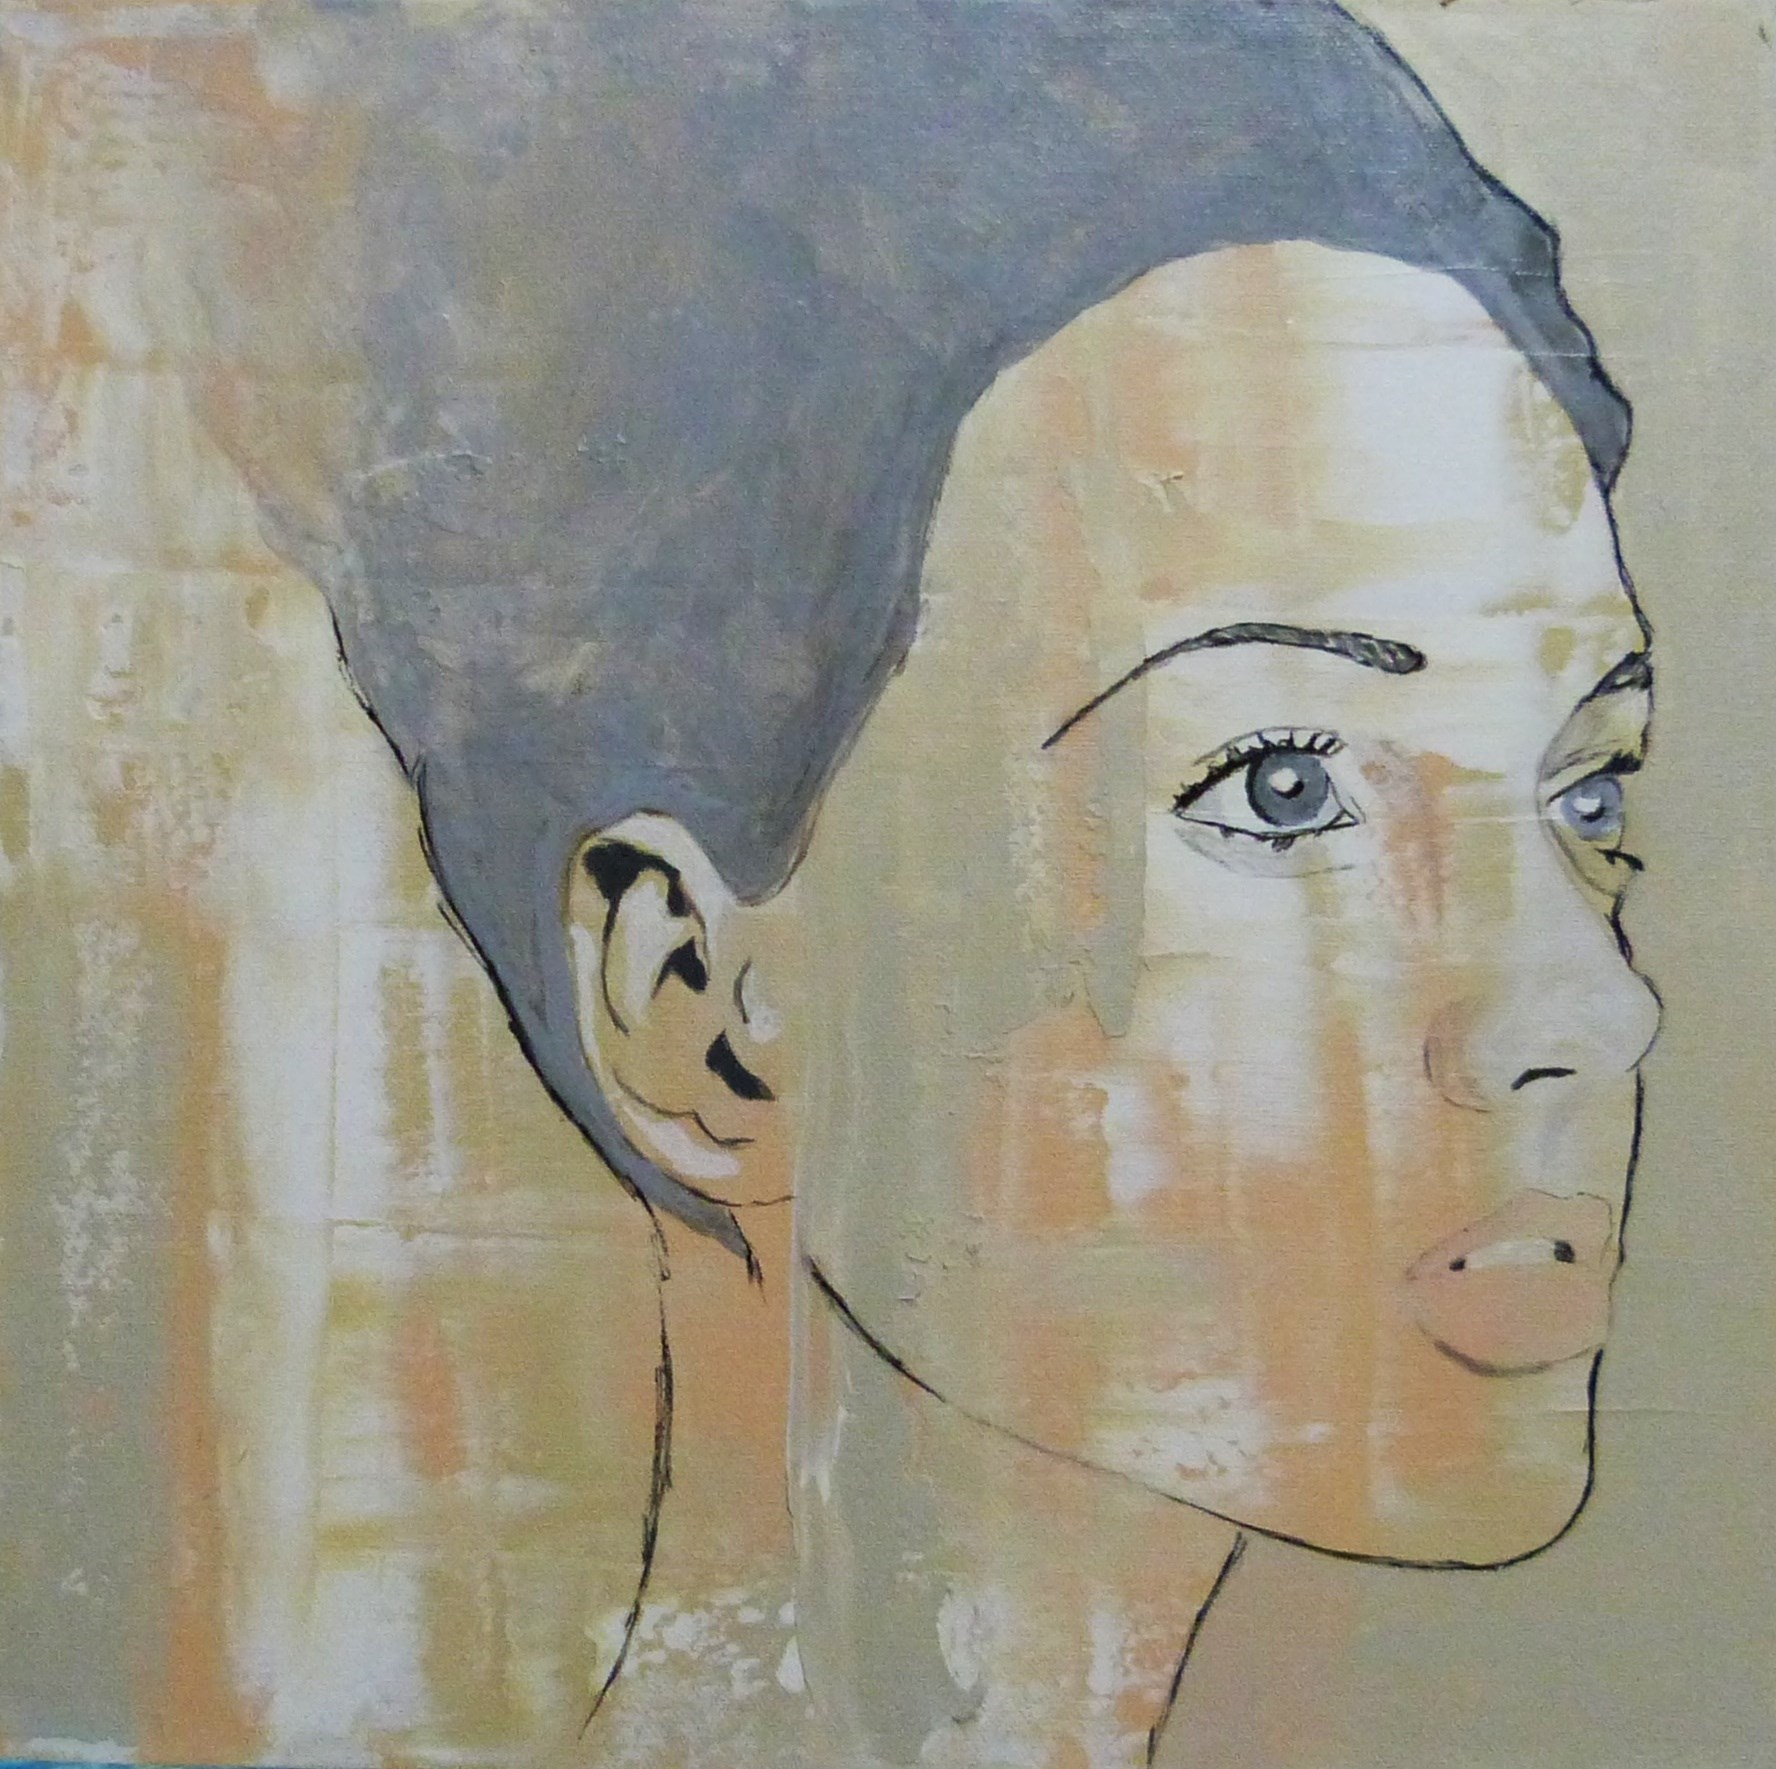 A rapariga-nuvem, original Human Figure Acrylic Painting by Joana Lopes